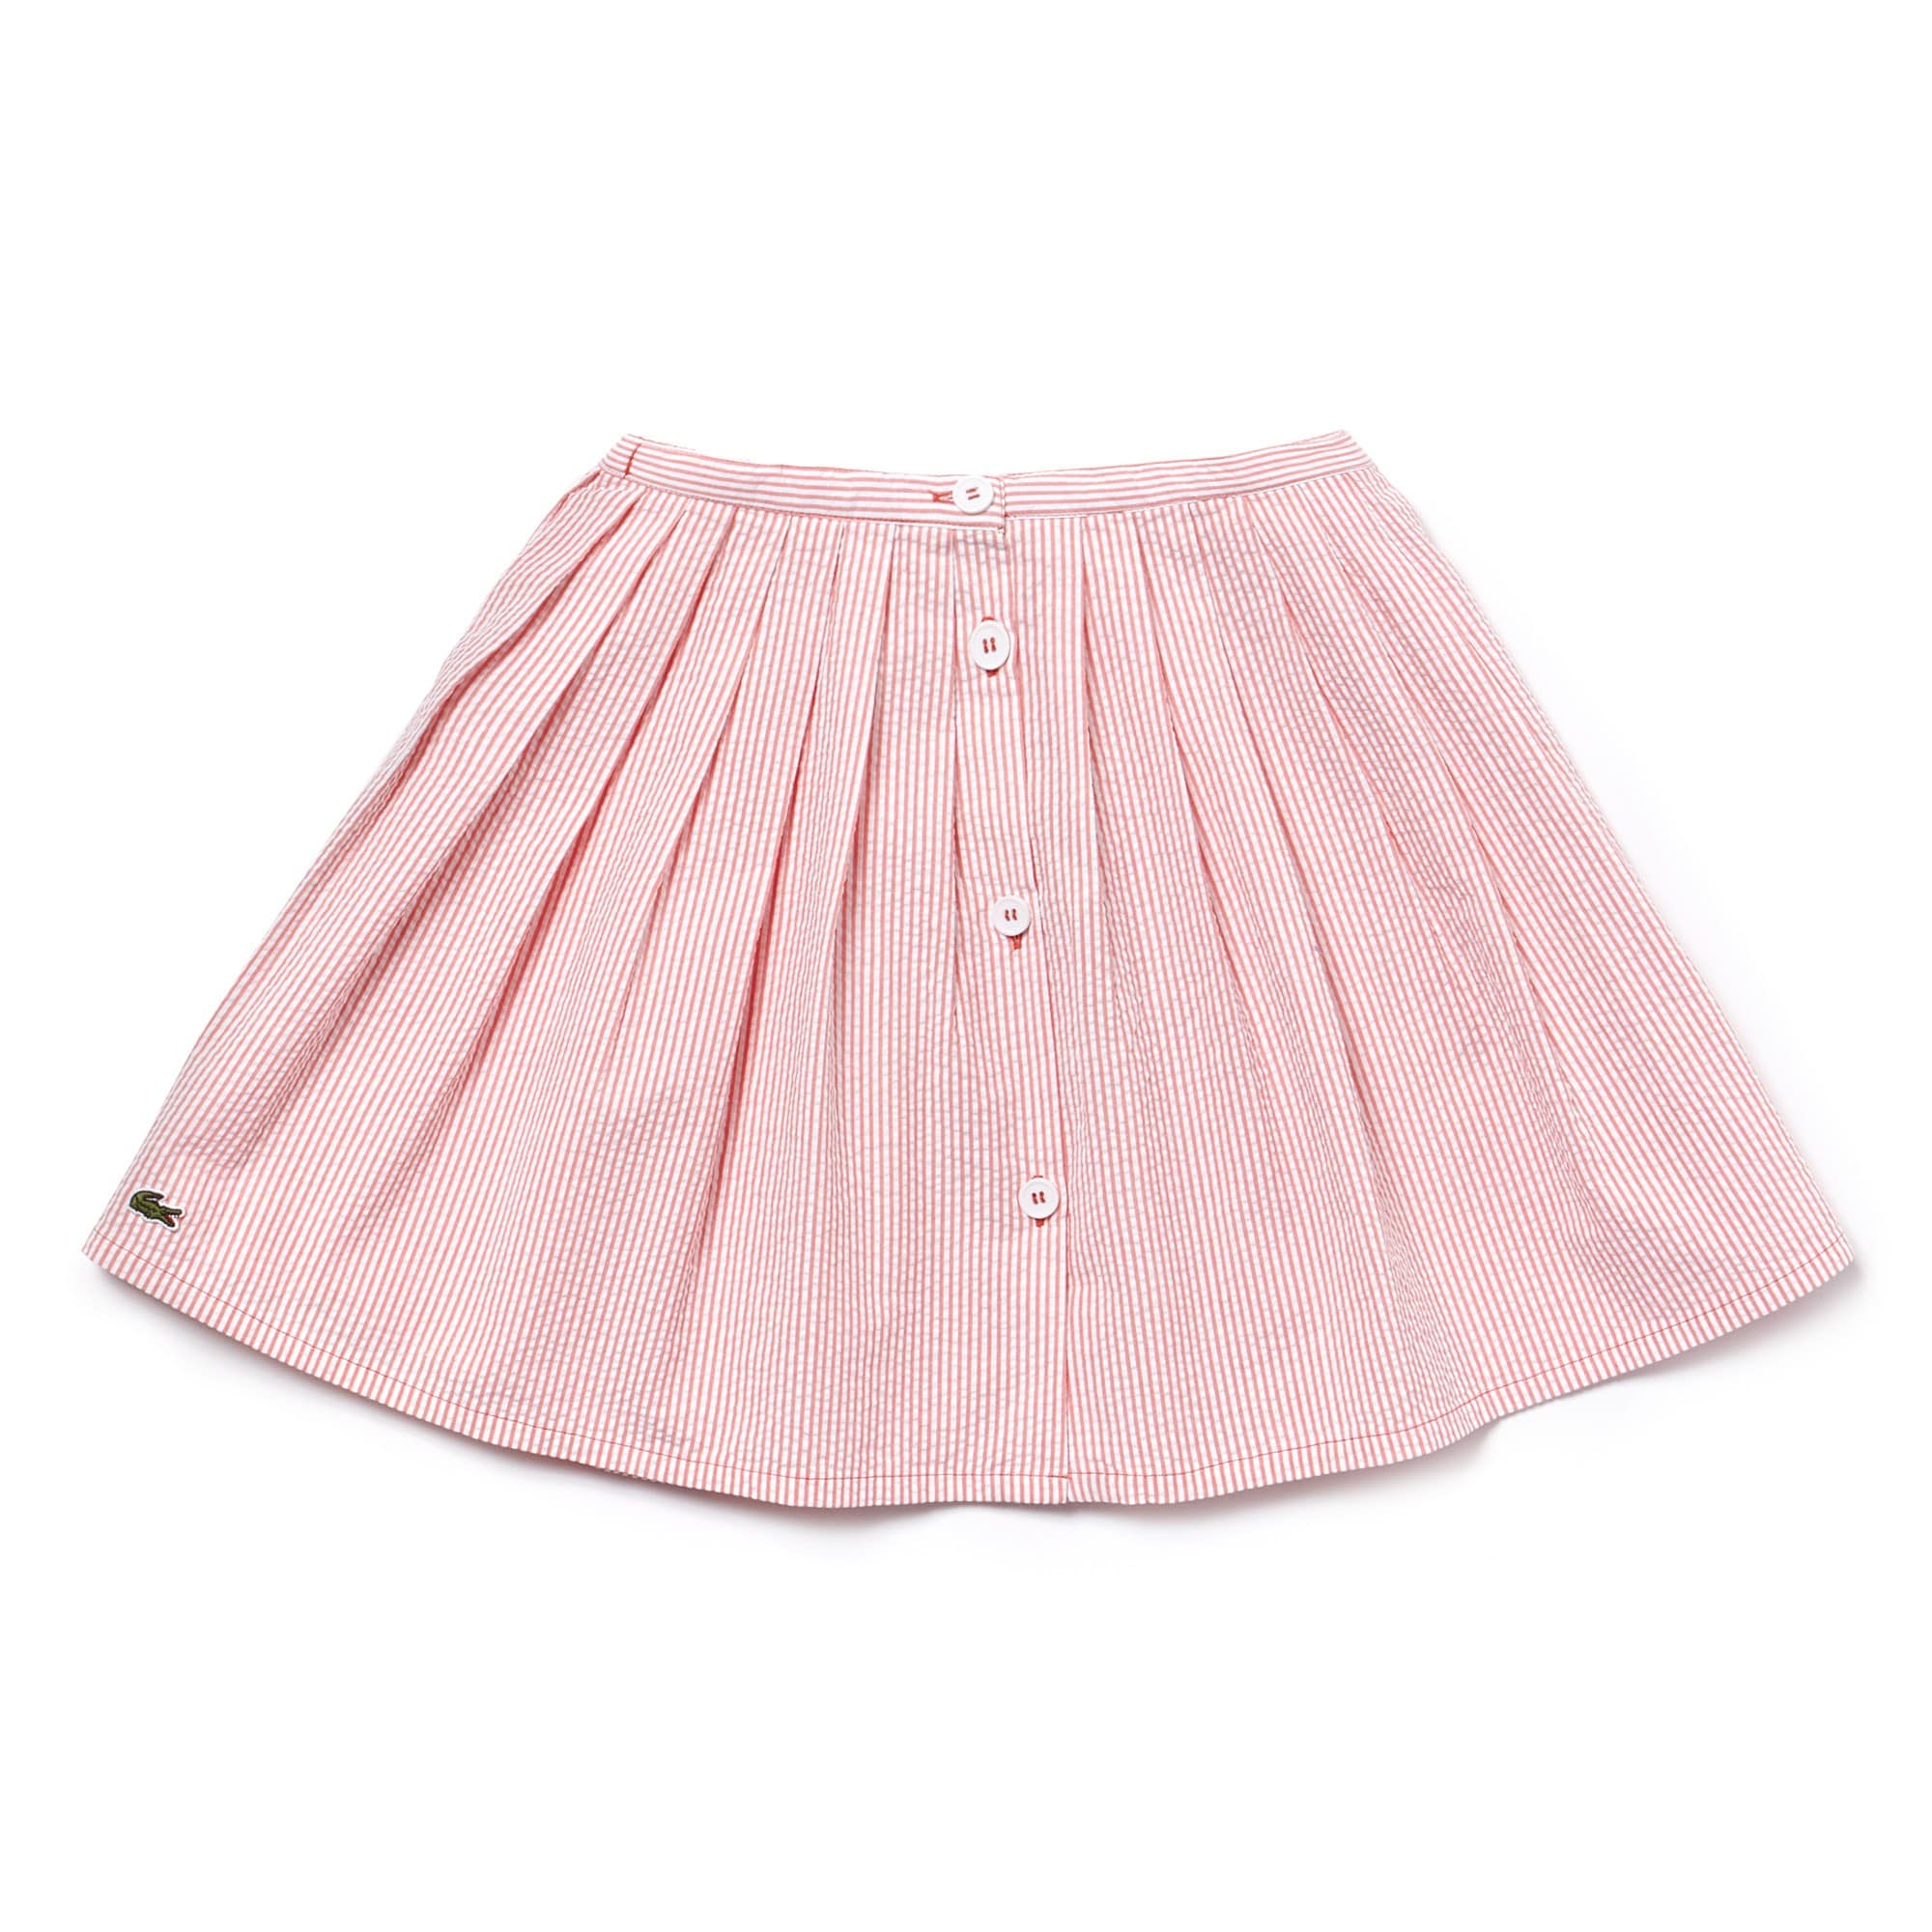 Girls' Cotton Seersucker Pleated Skirt